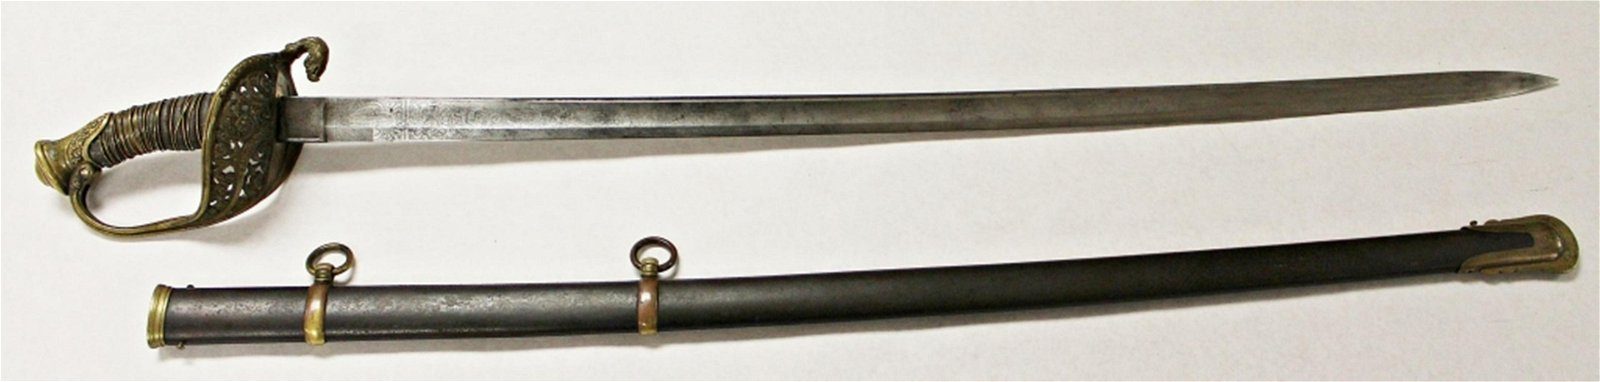 U.S. MARKED CIVIL WAR SWORD WITH SCABBARD